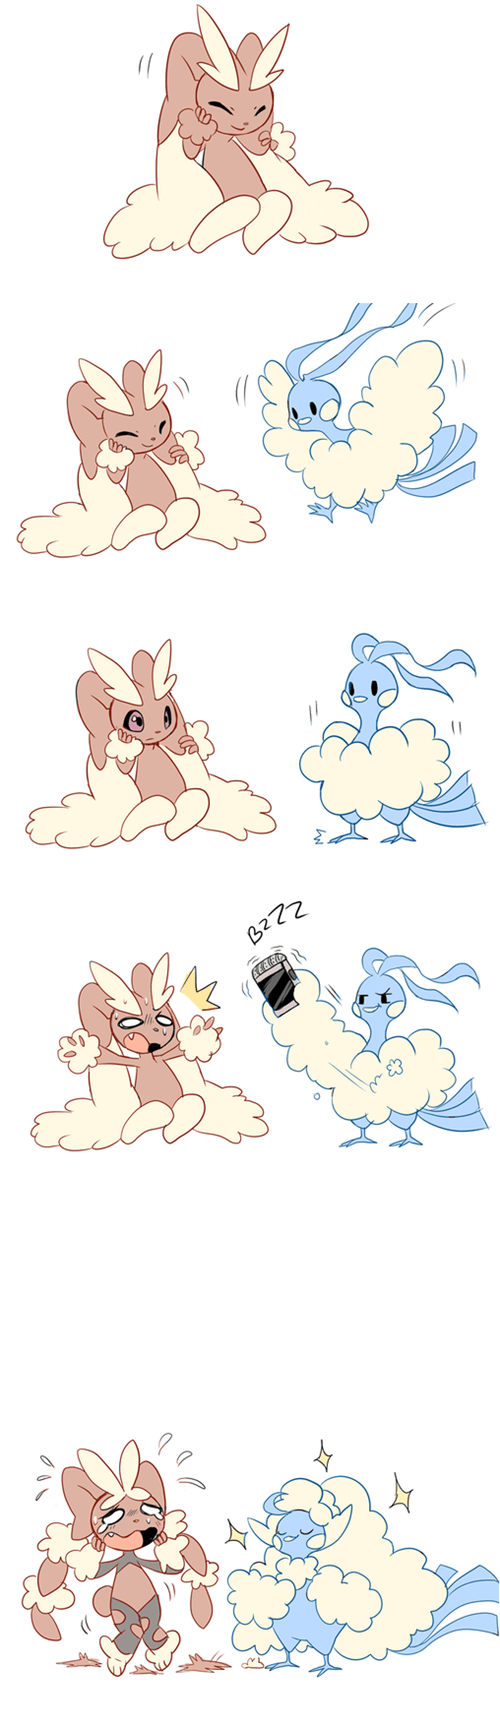 mega lopunny Pokémon Fan Art cute mega altaria